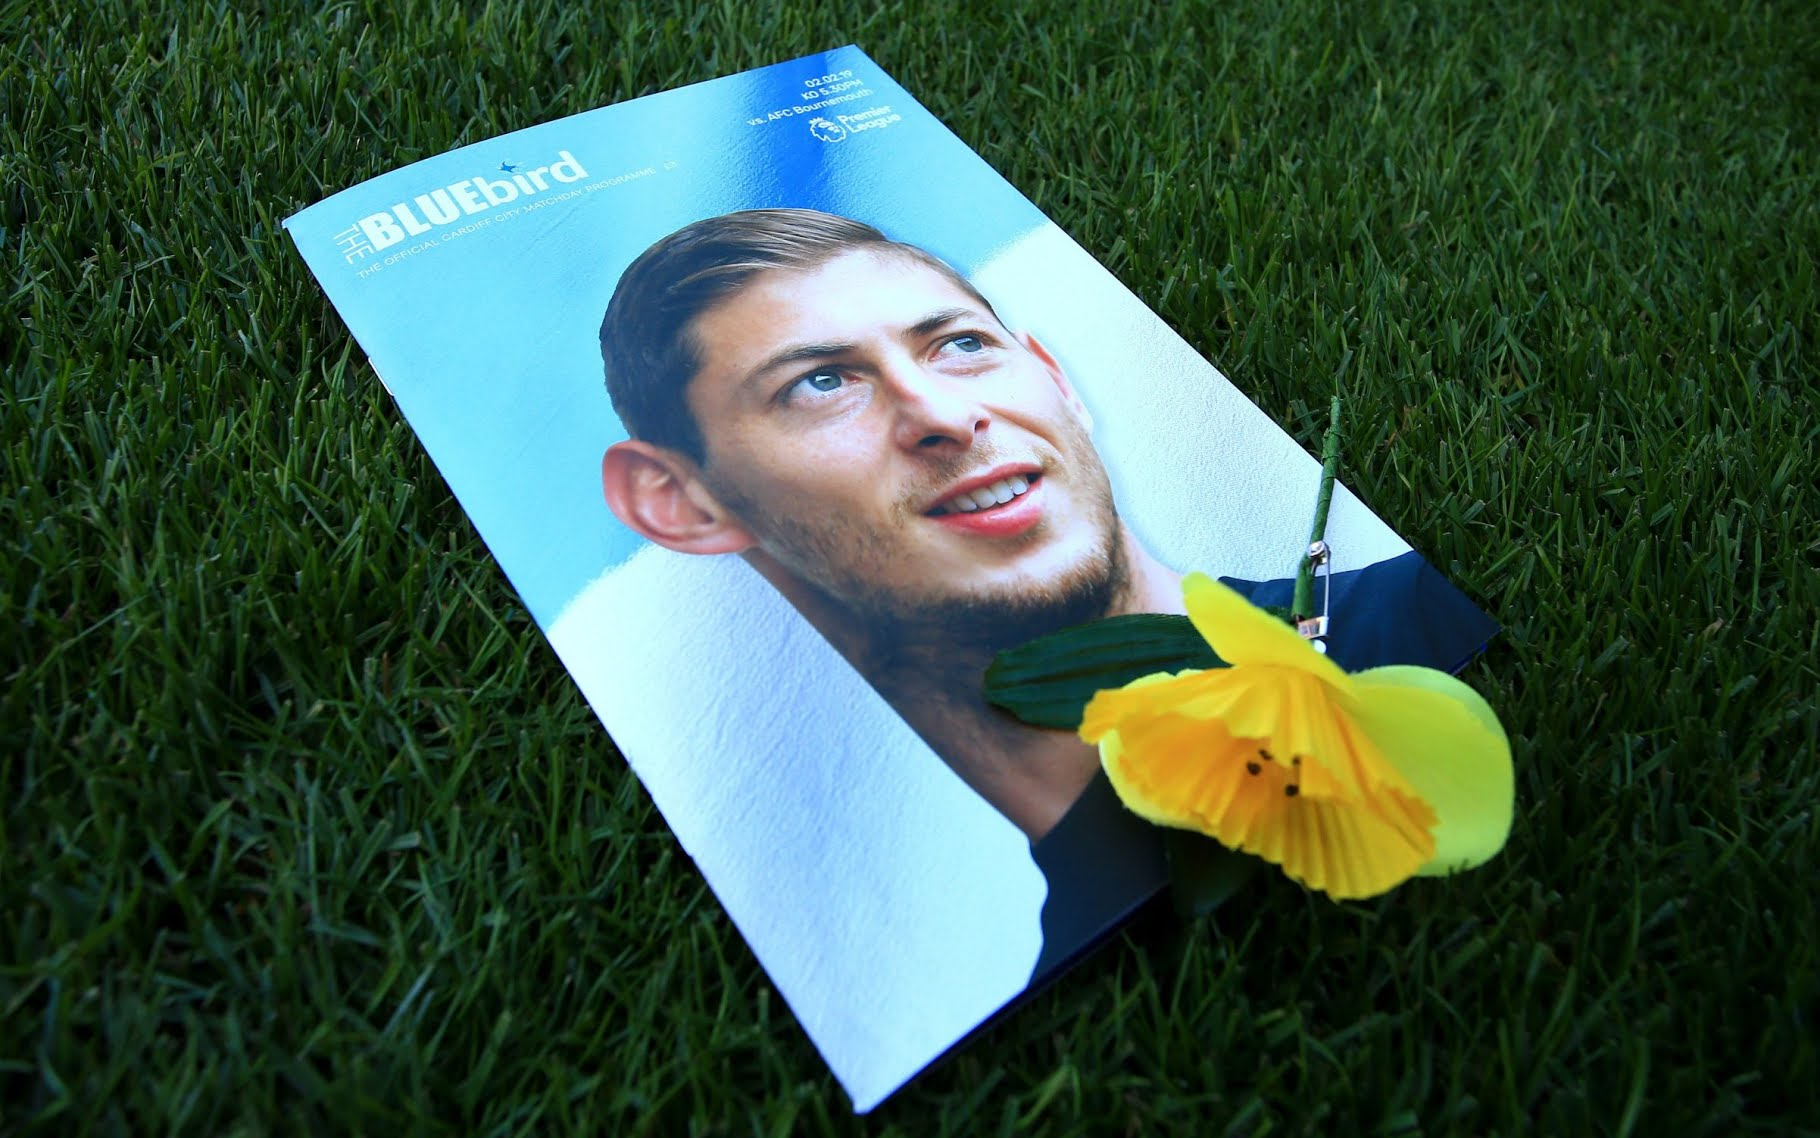 Sala was killed in a plane crash in January